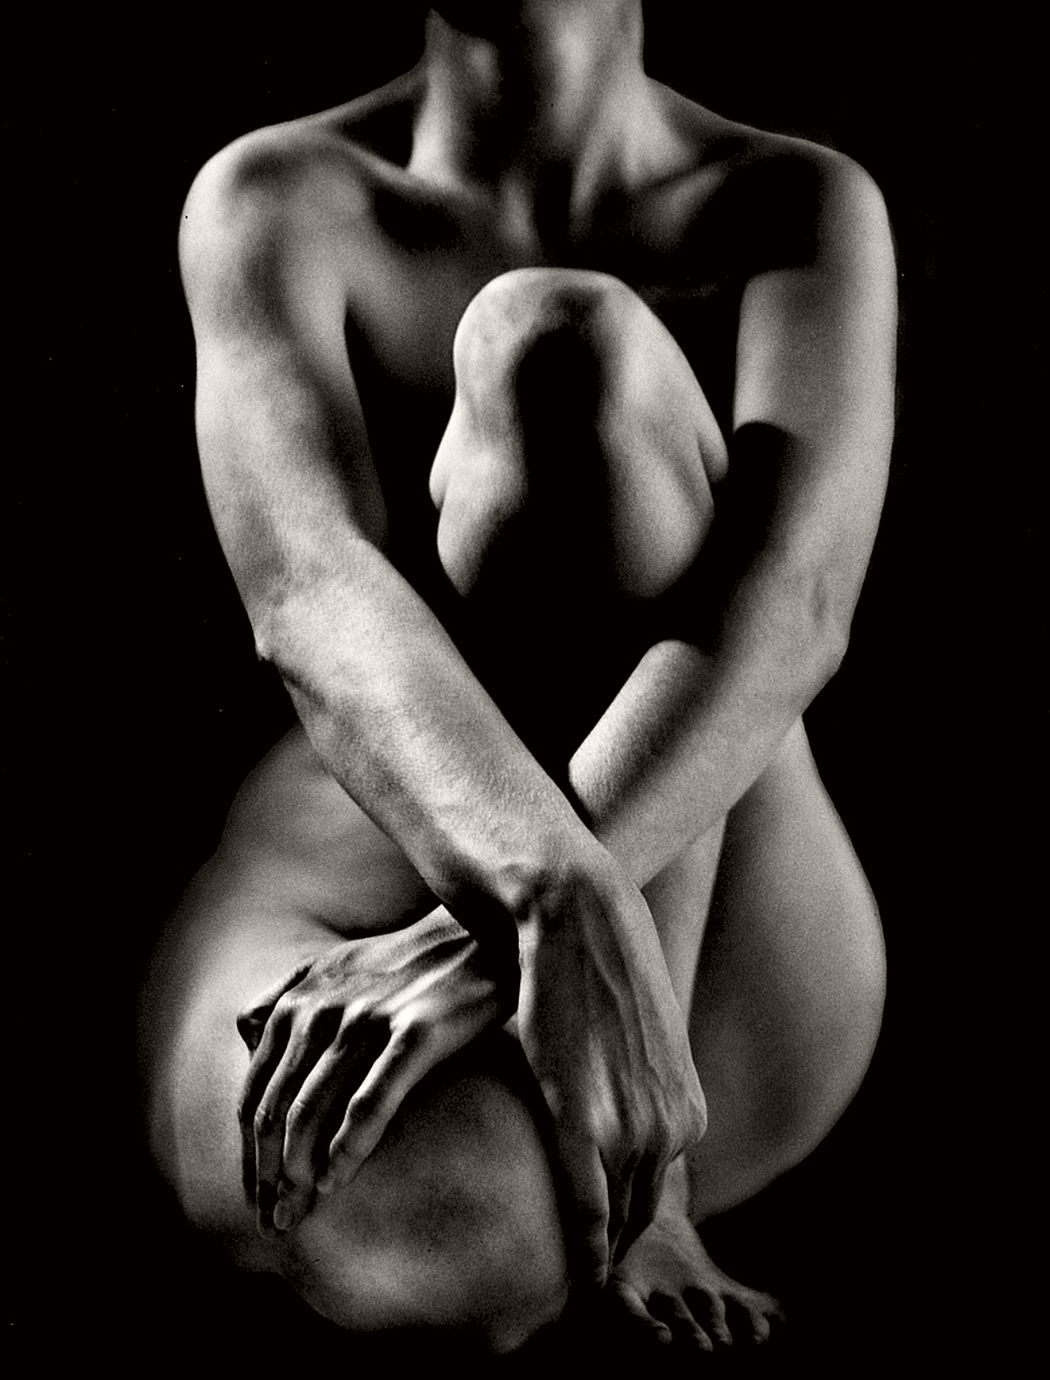 nude-photographer-ruth-bernhard-02